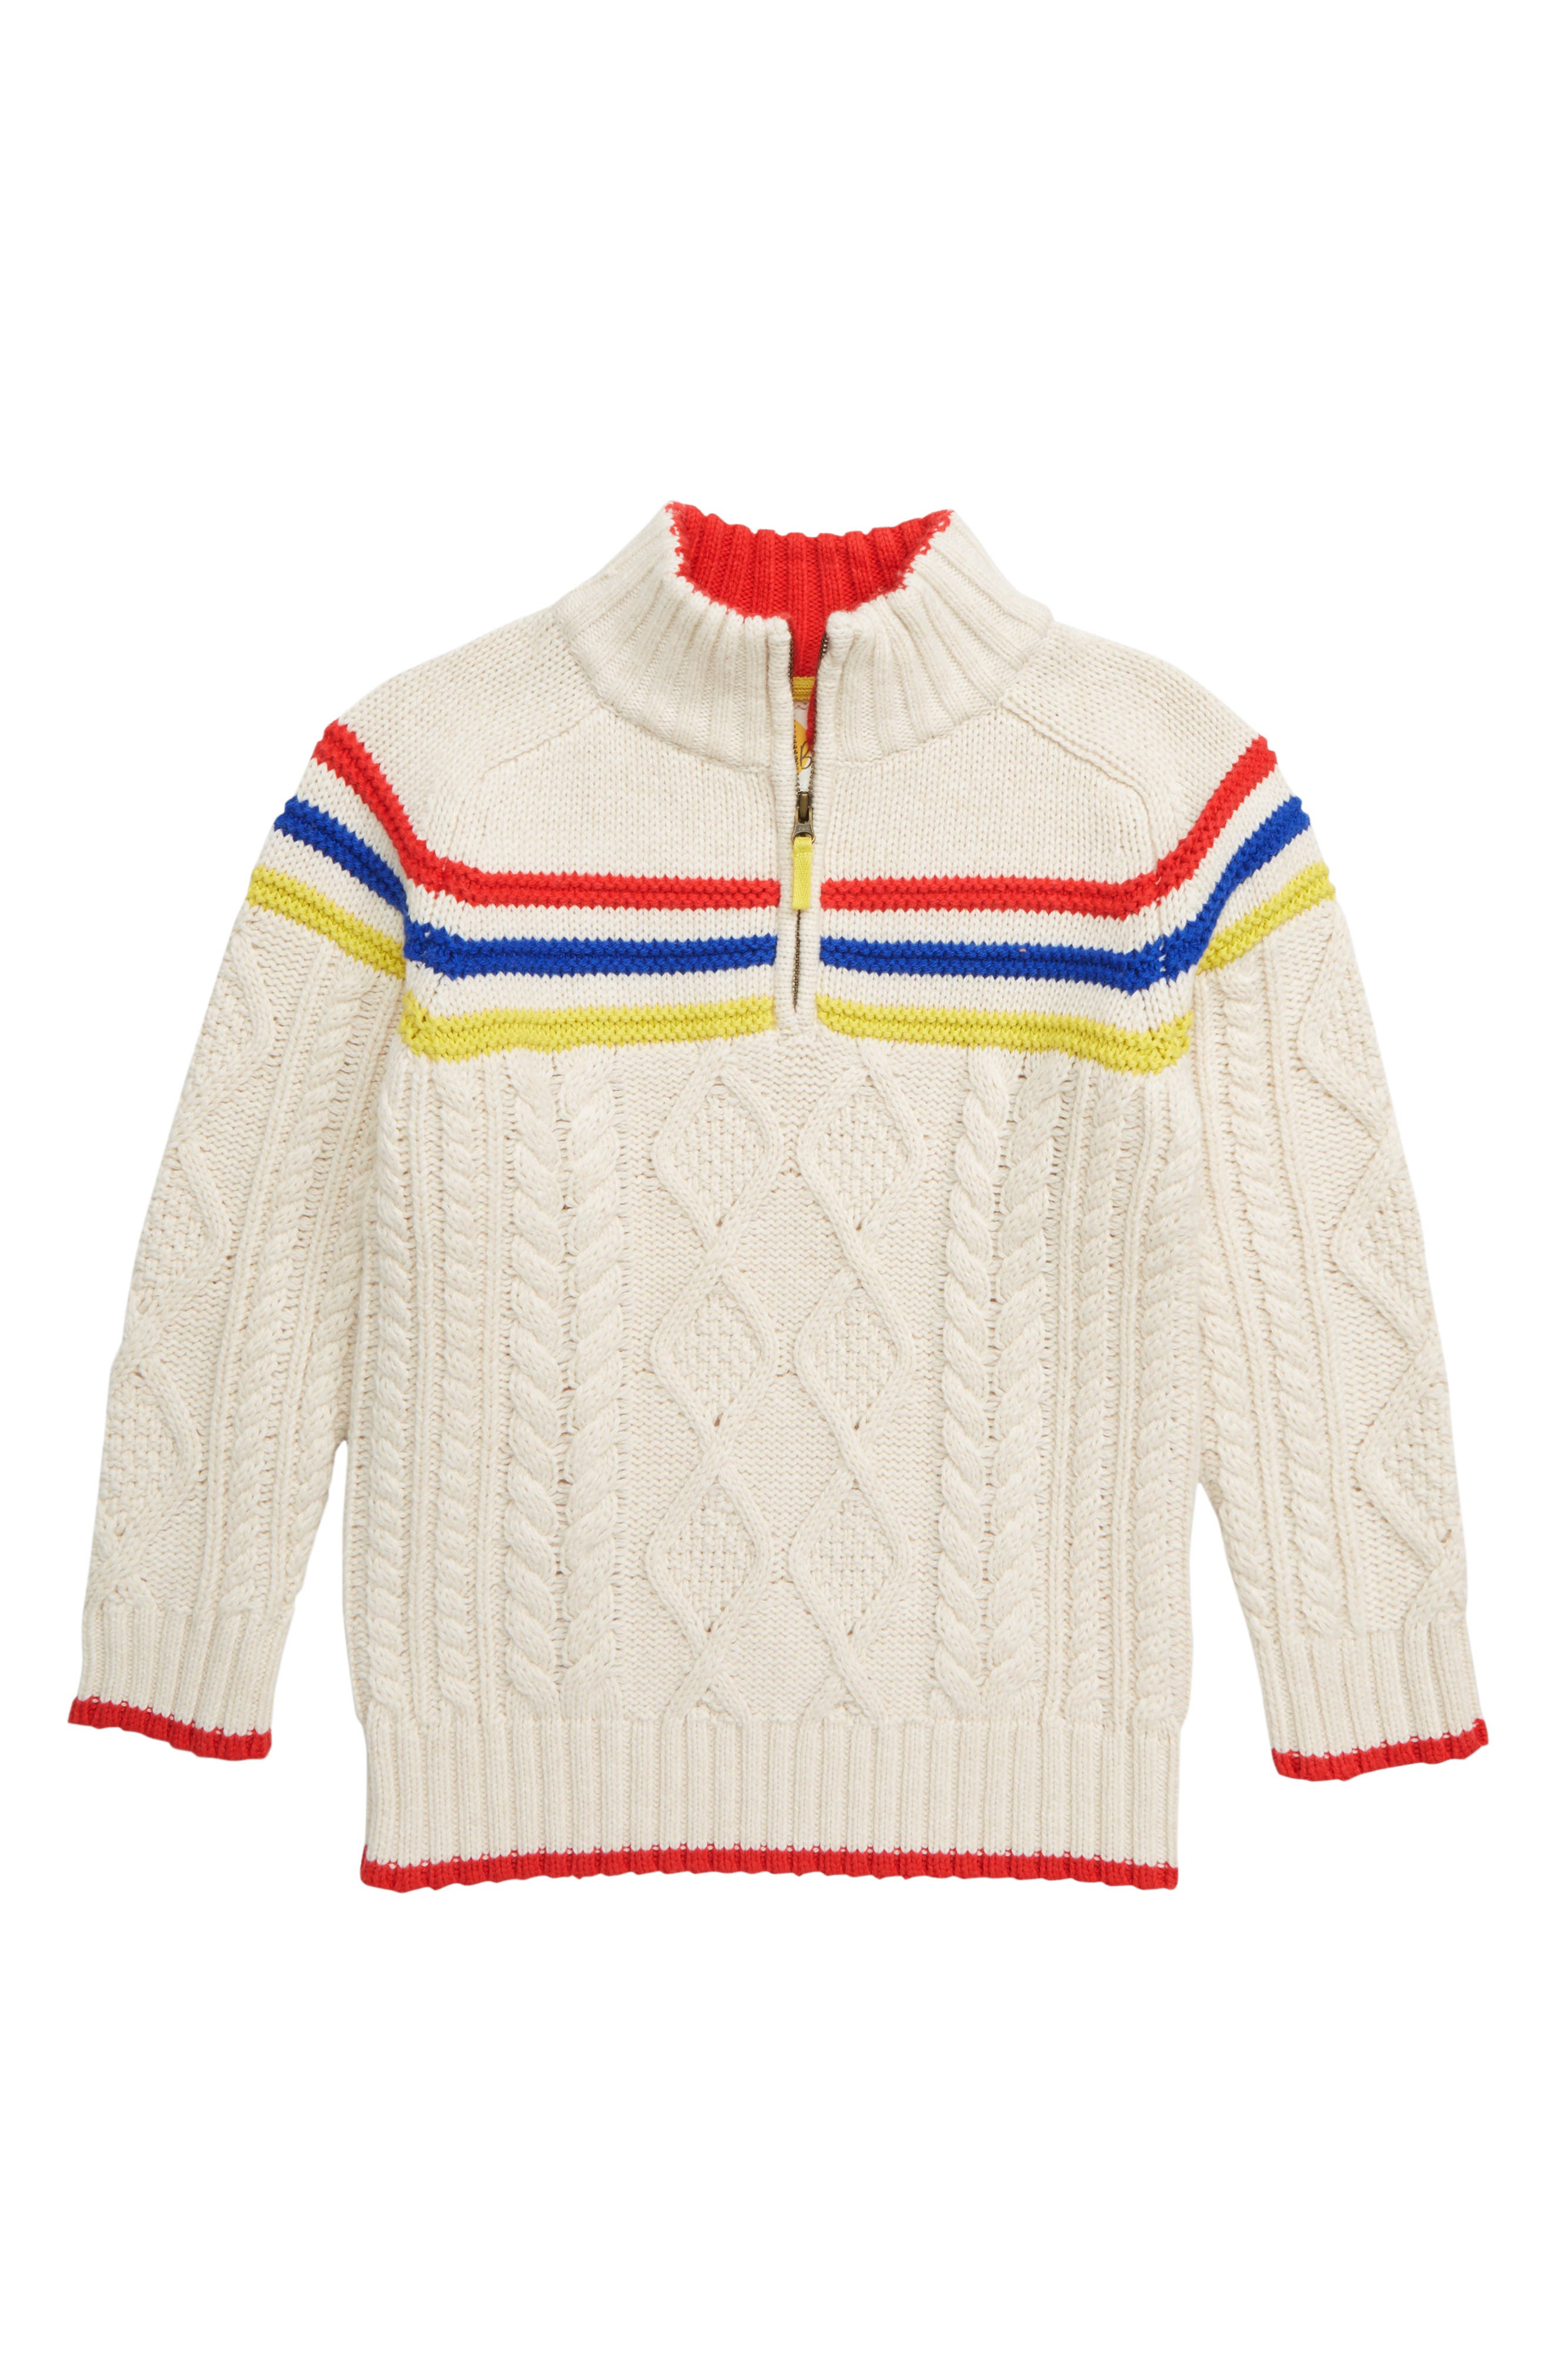 Boys Mini Boden Half Zip Pullover Size 1112Y  Ivory